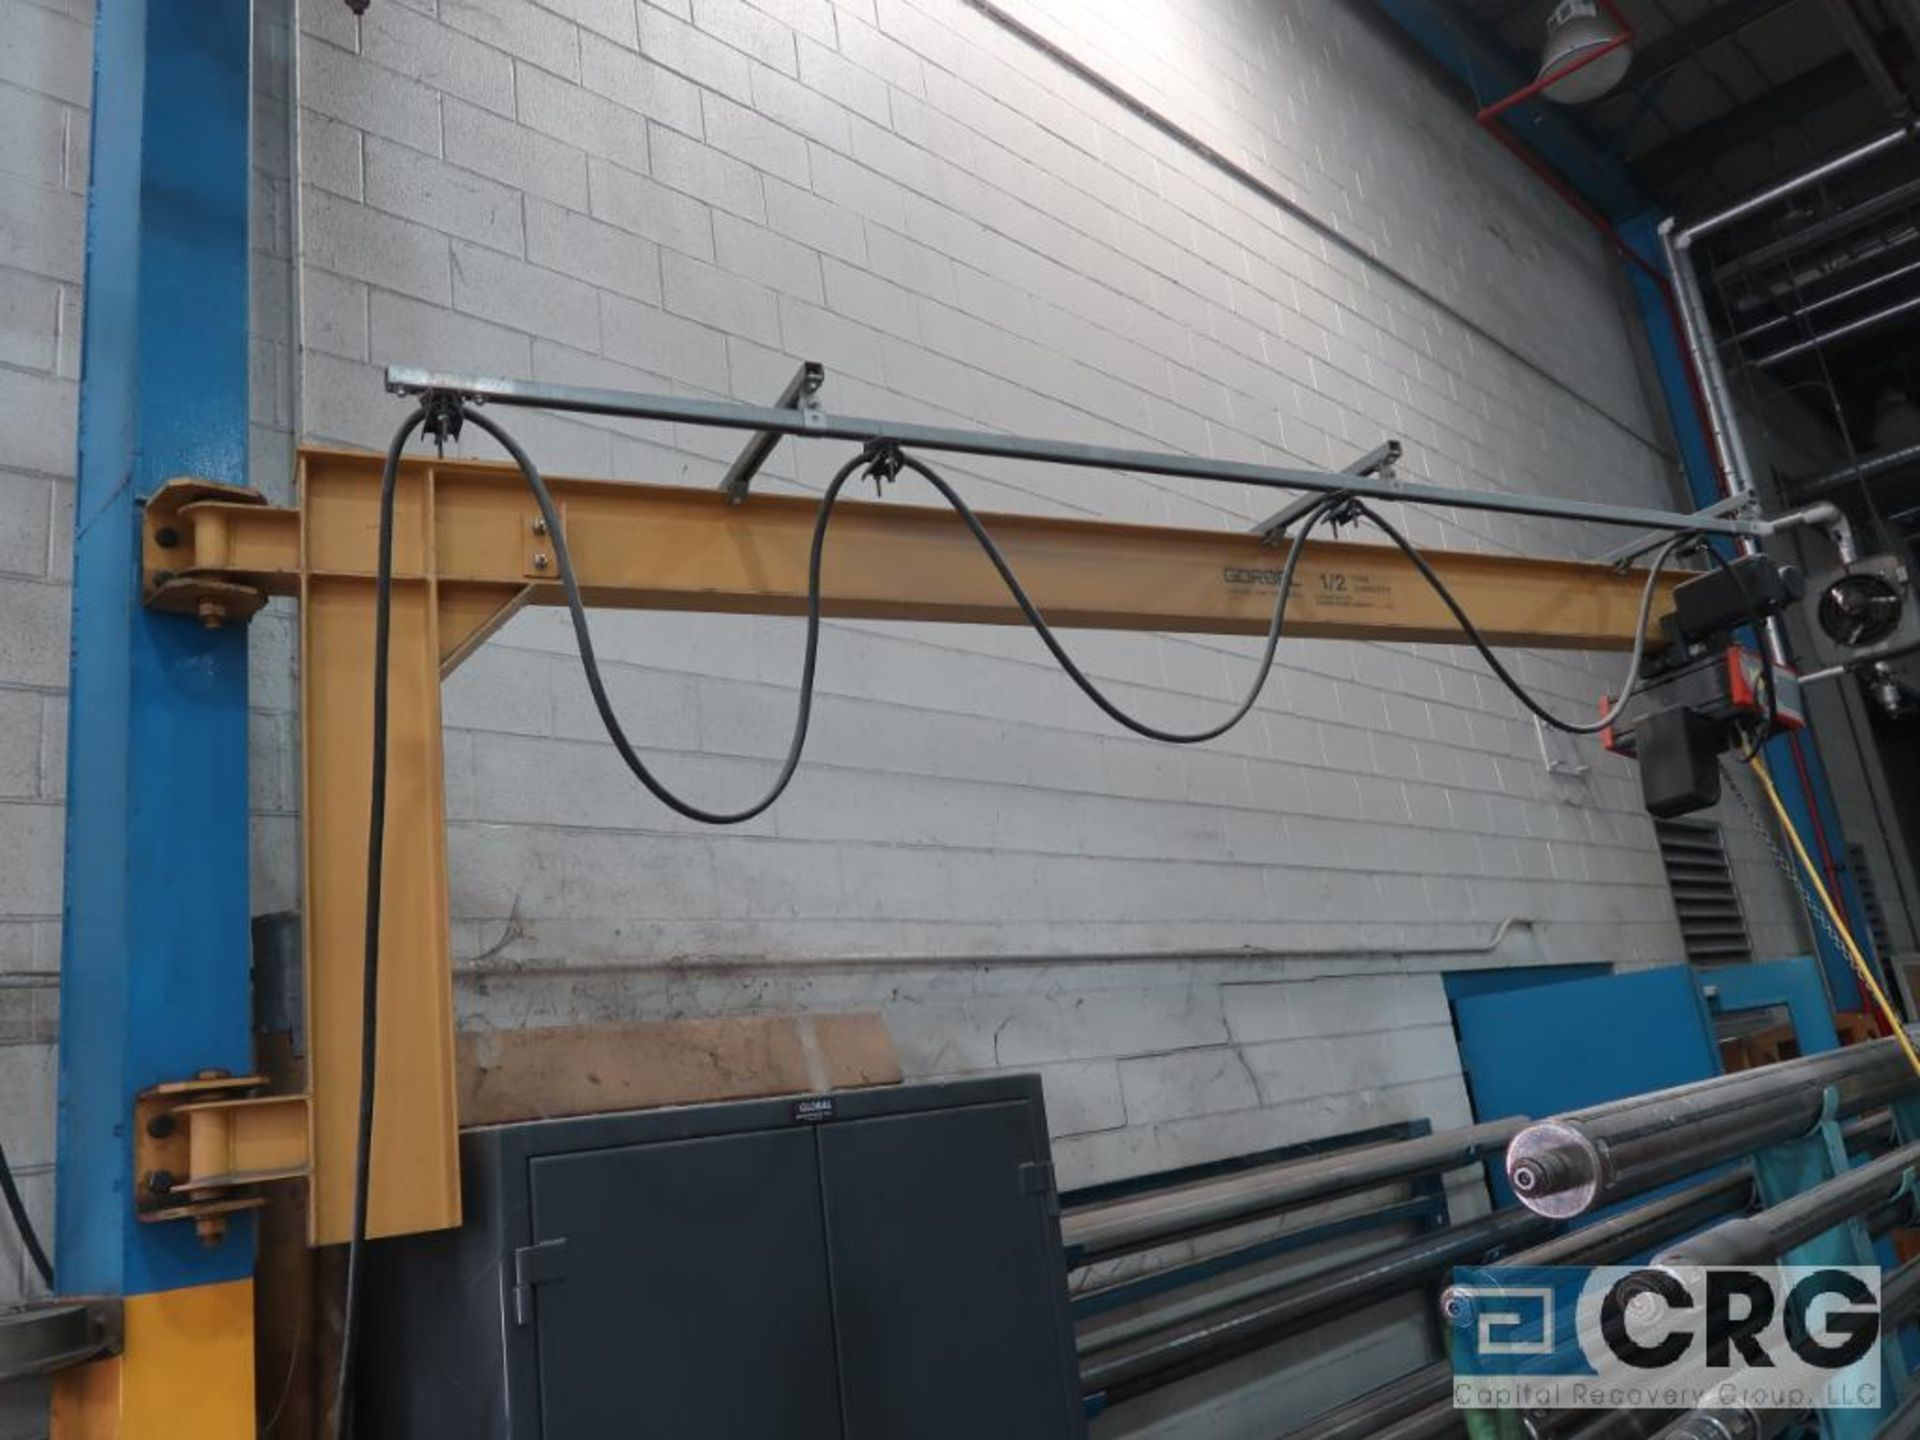 Konecranes hoist, 1/2 ton cap., with Gorbel 10 ft. long swing arm (Located by North 2nd Slitter Roll - Image 2 of 3